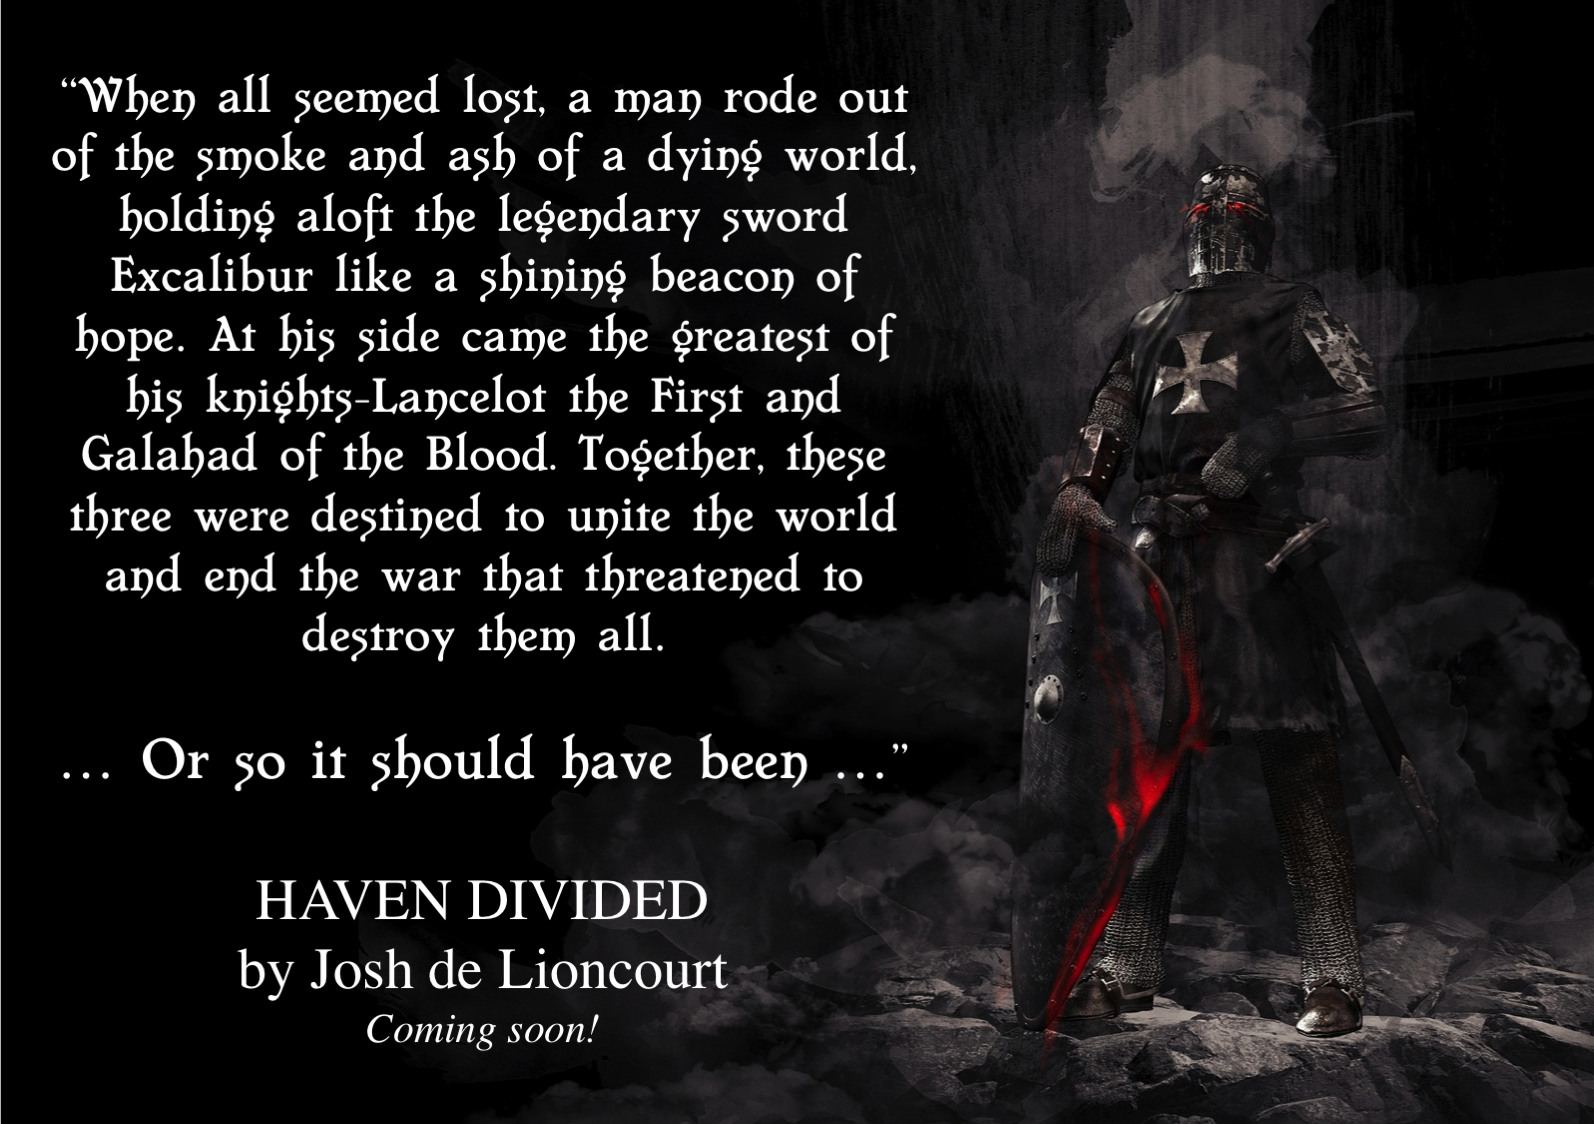 When all seemed lost, a man rode out of the smoke and ash of a dying world, holding aloft the legendary sword Excalibur like a shining beacon of hope. At his side came the greatest of his knights—Lancelot the First and Galahad of the Blood. Together, these three were destined to unite the world and end the war that threatened to destroy them all ... Or so it should have been ...